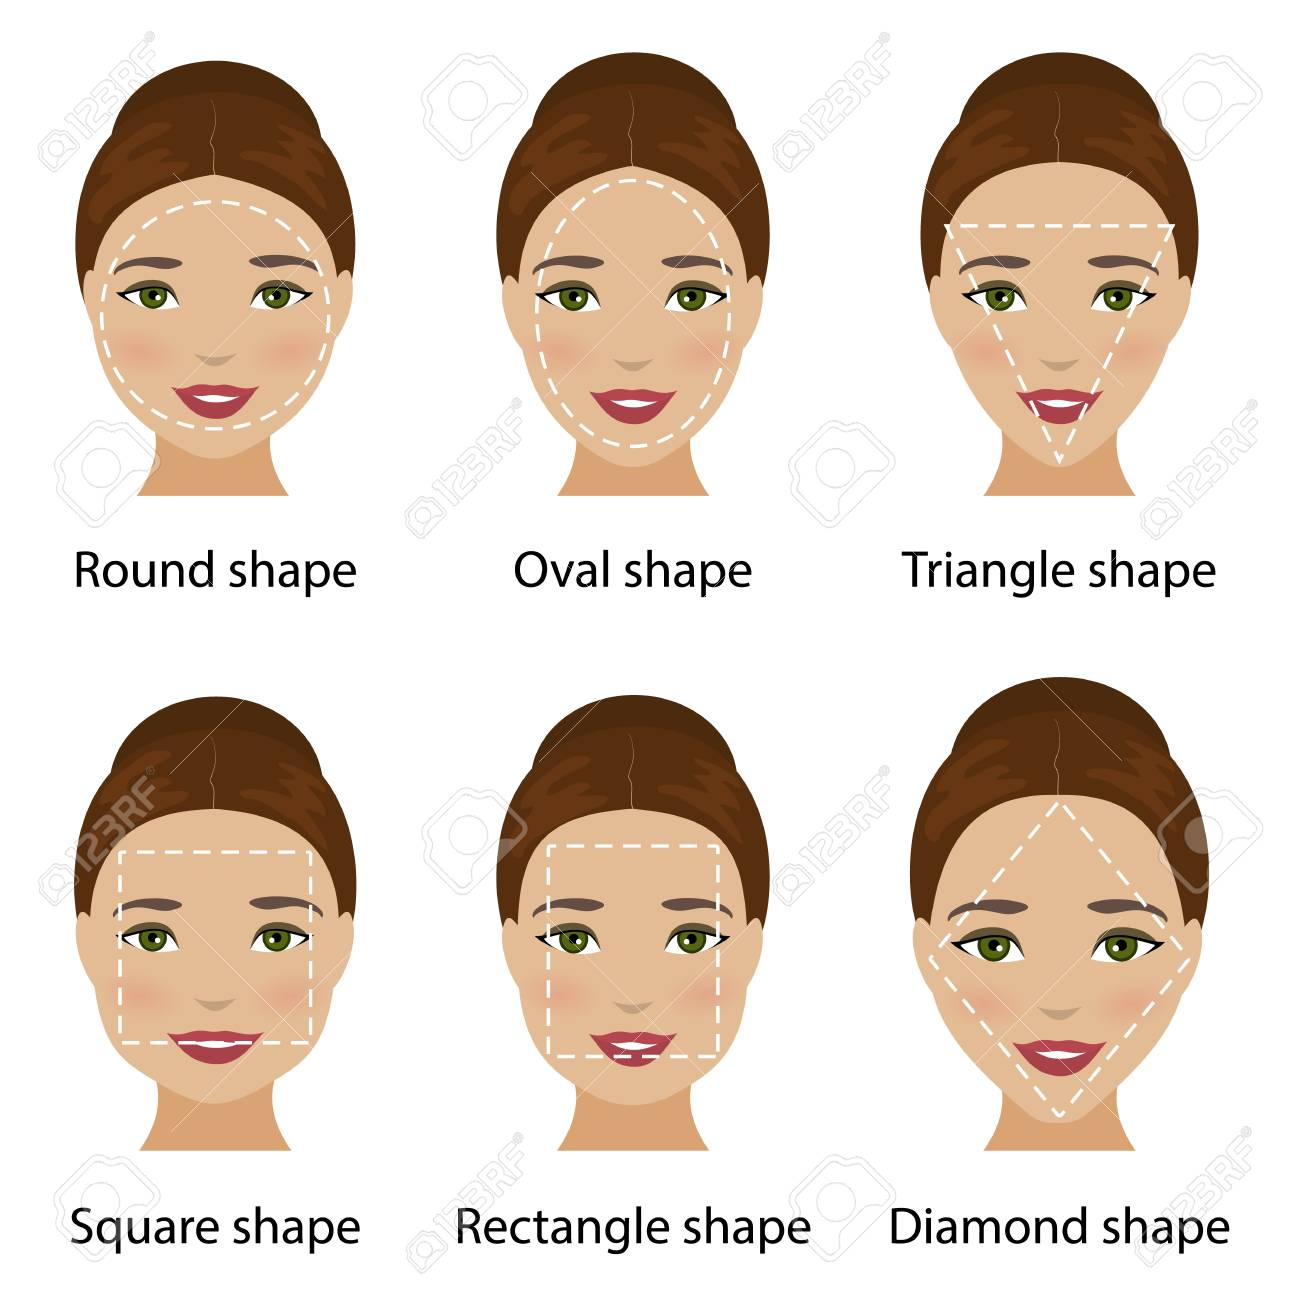 c10af96b6b Set Of Different Types Of Woman Face Shapes As Oval